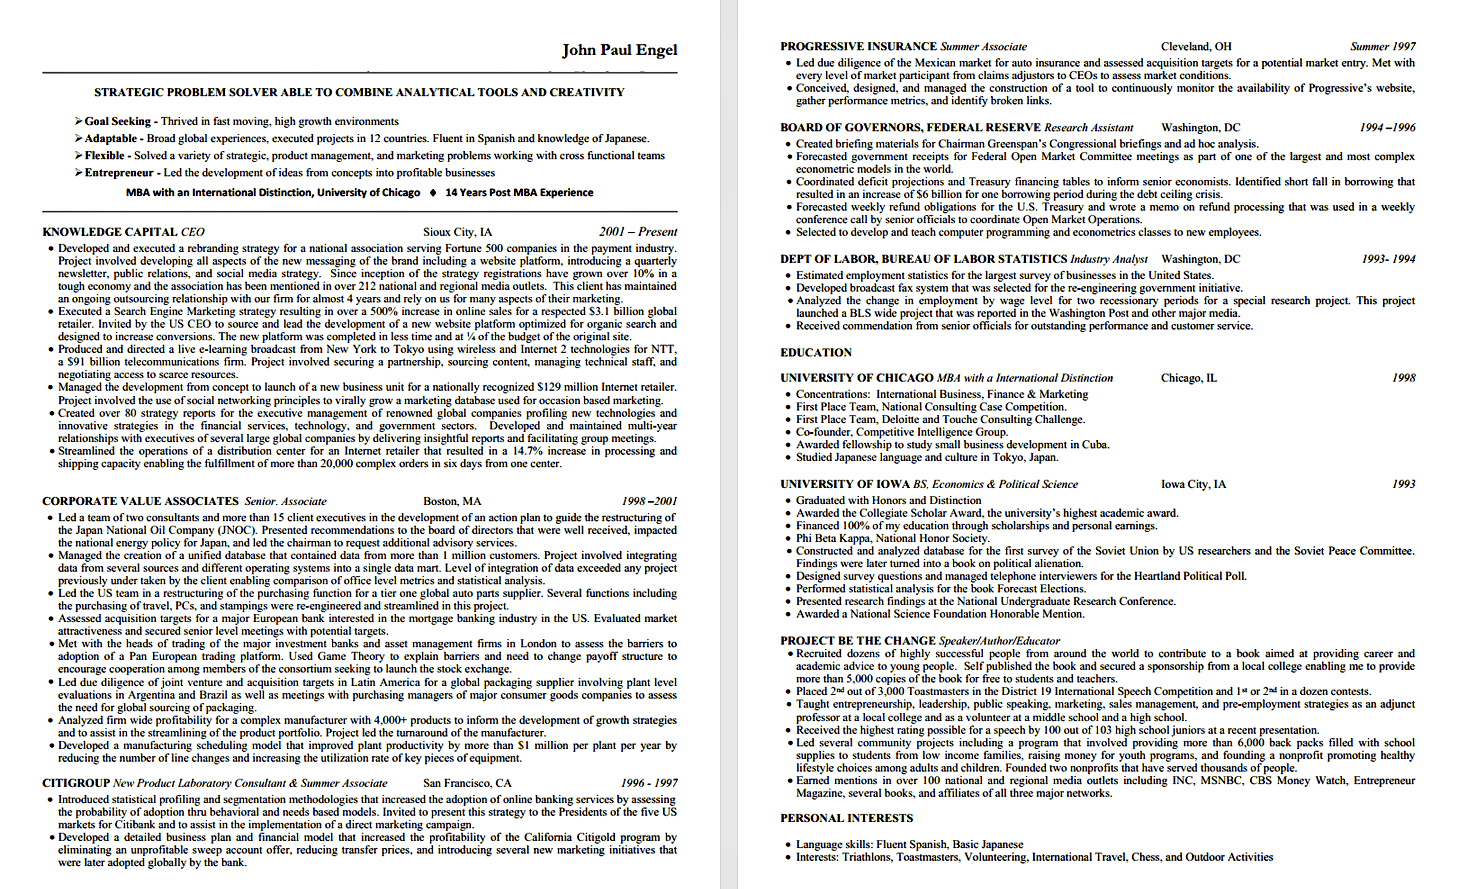 specific advice for standout resume ziprecruiter search john paul engel resume3 small Resume Ziprecruiter Resume Search